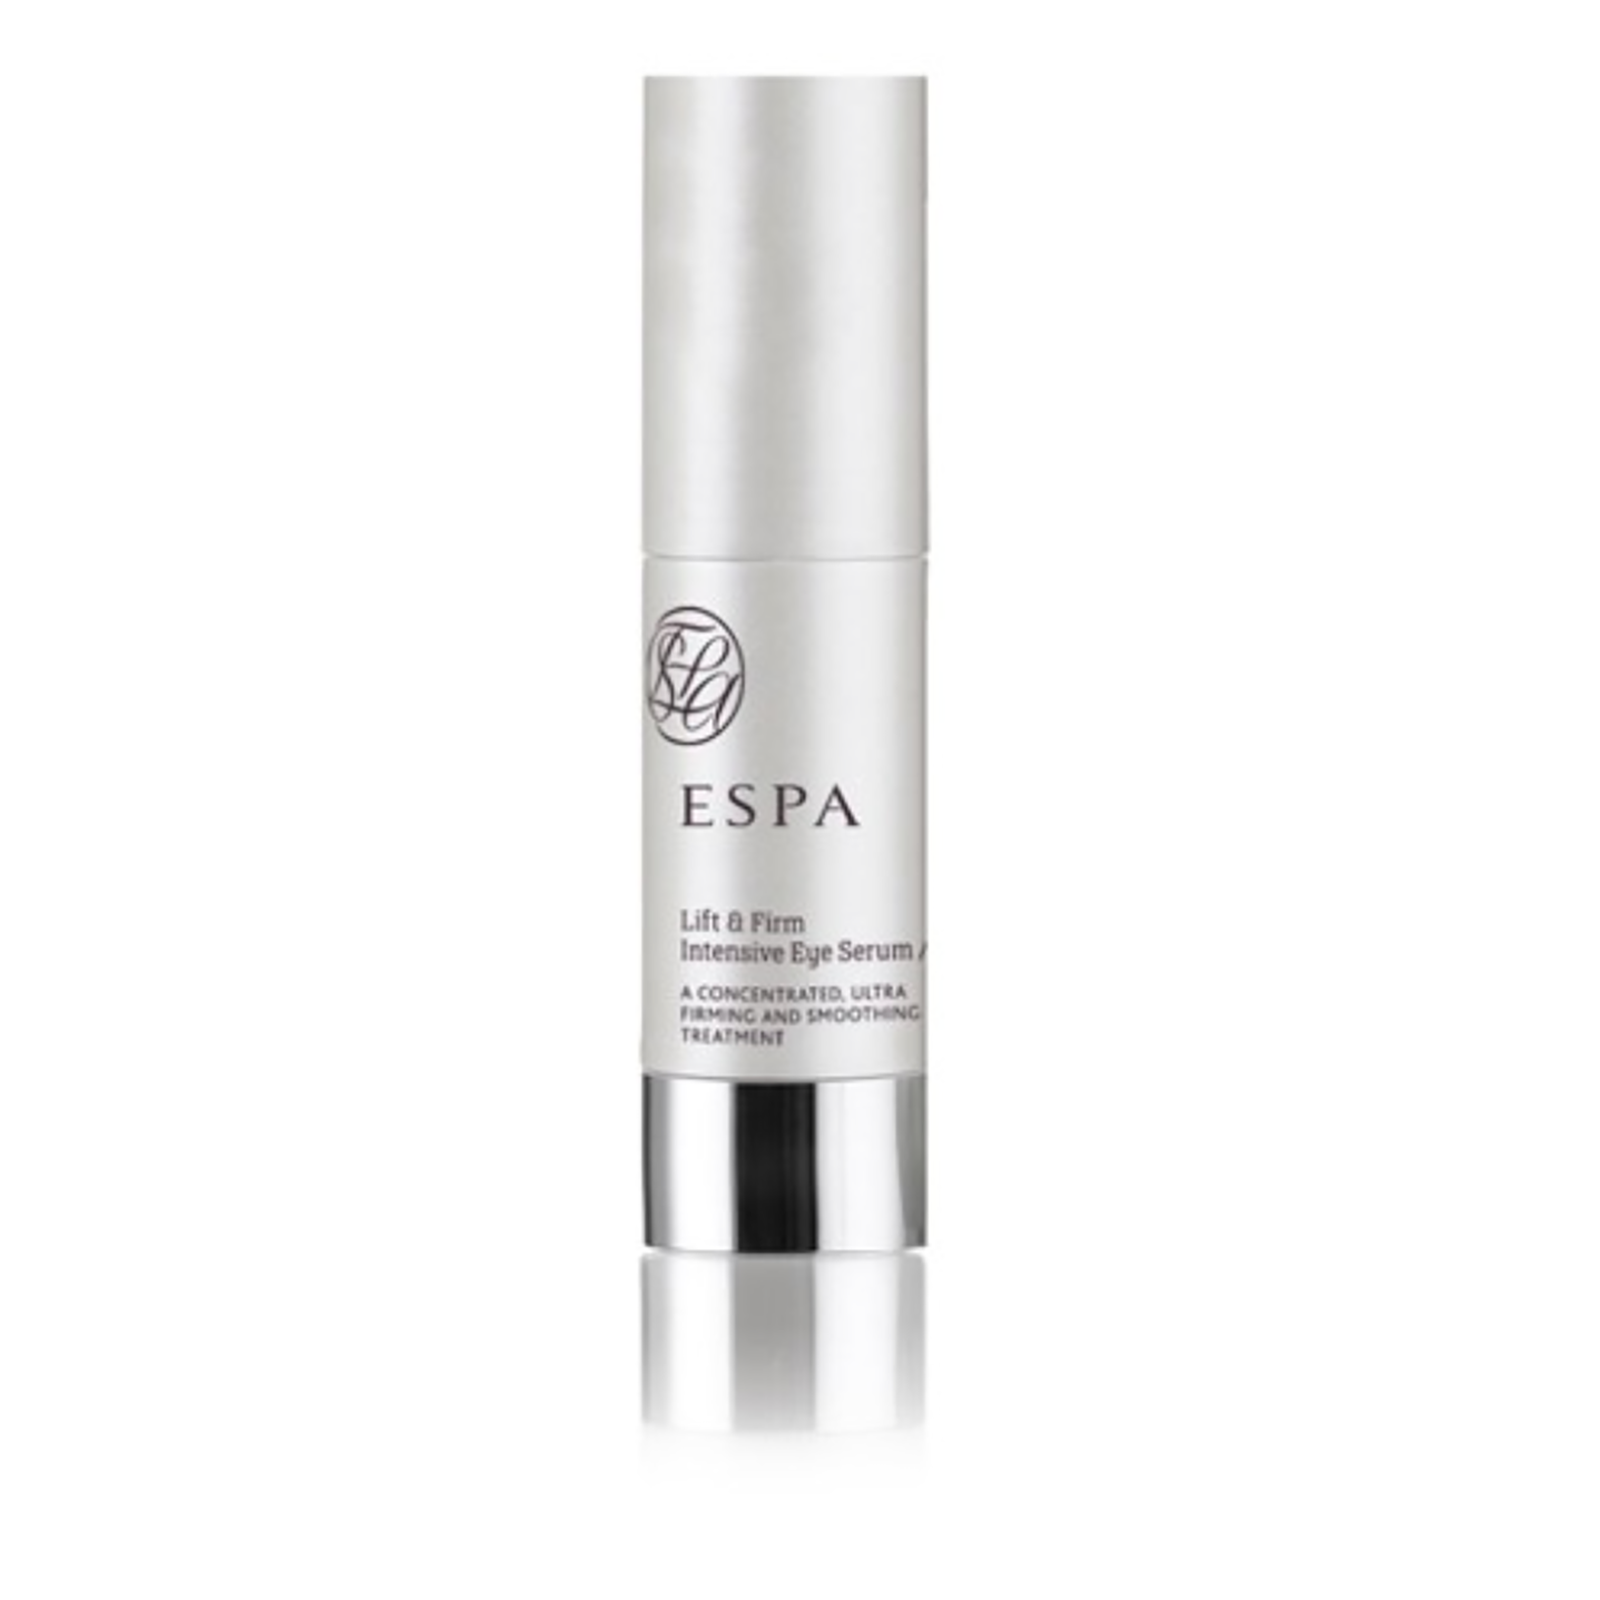 ESPA Lift & Firm Intensive Eye Serum (15ml)